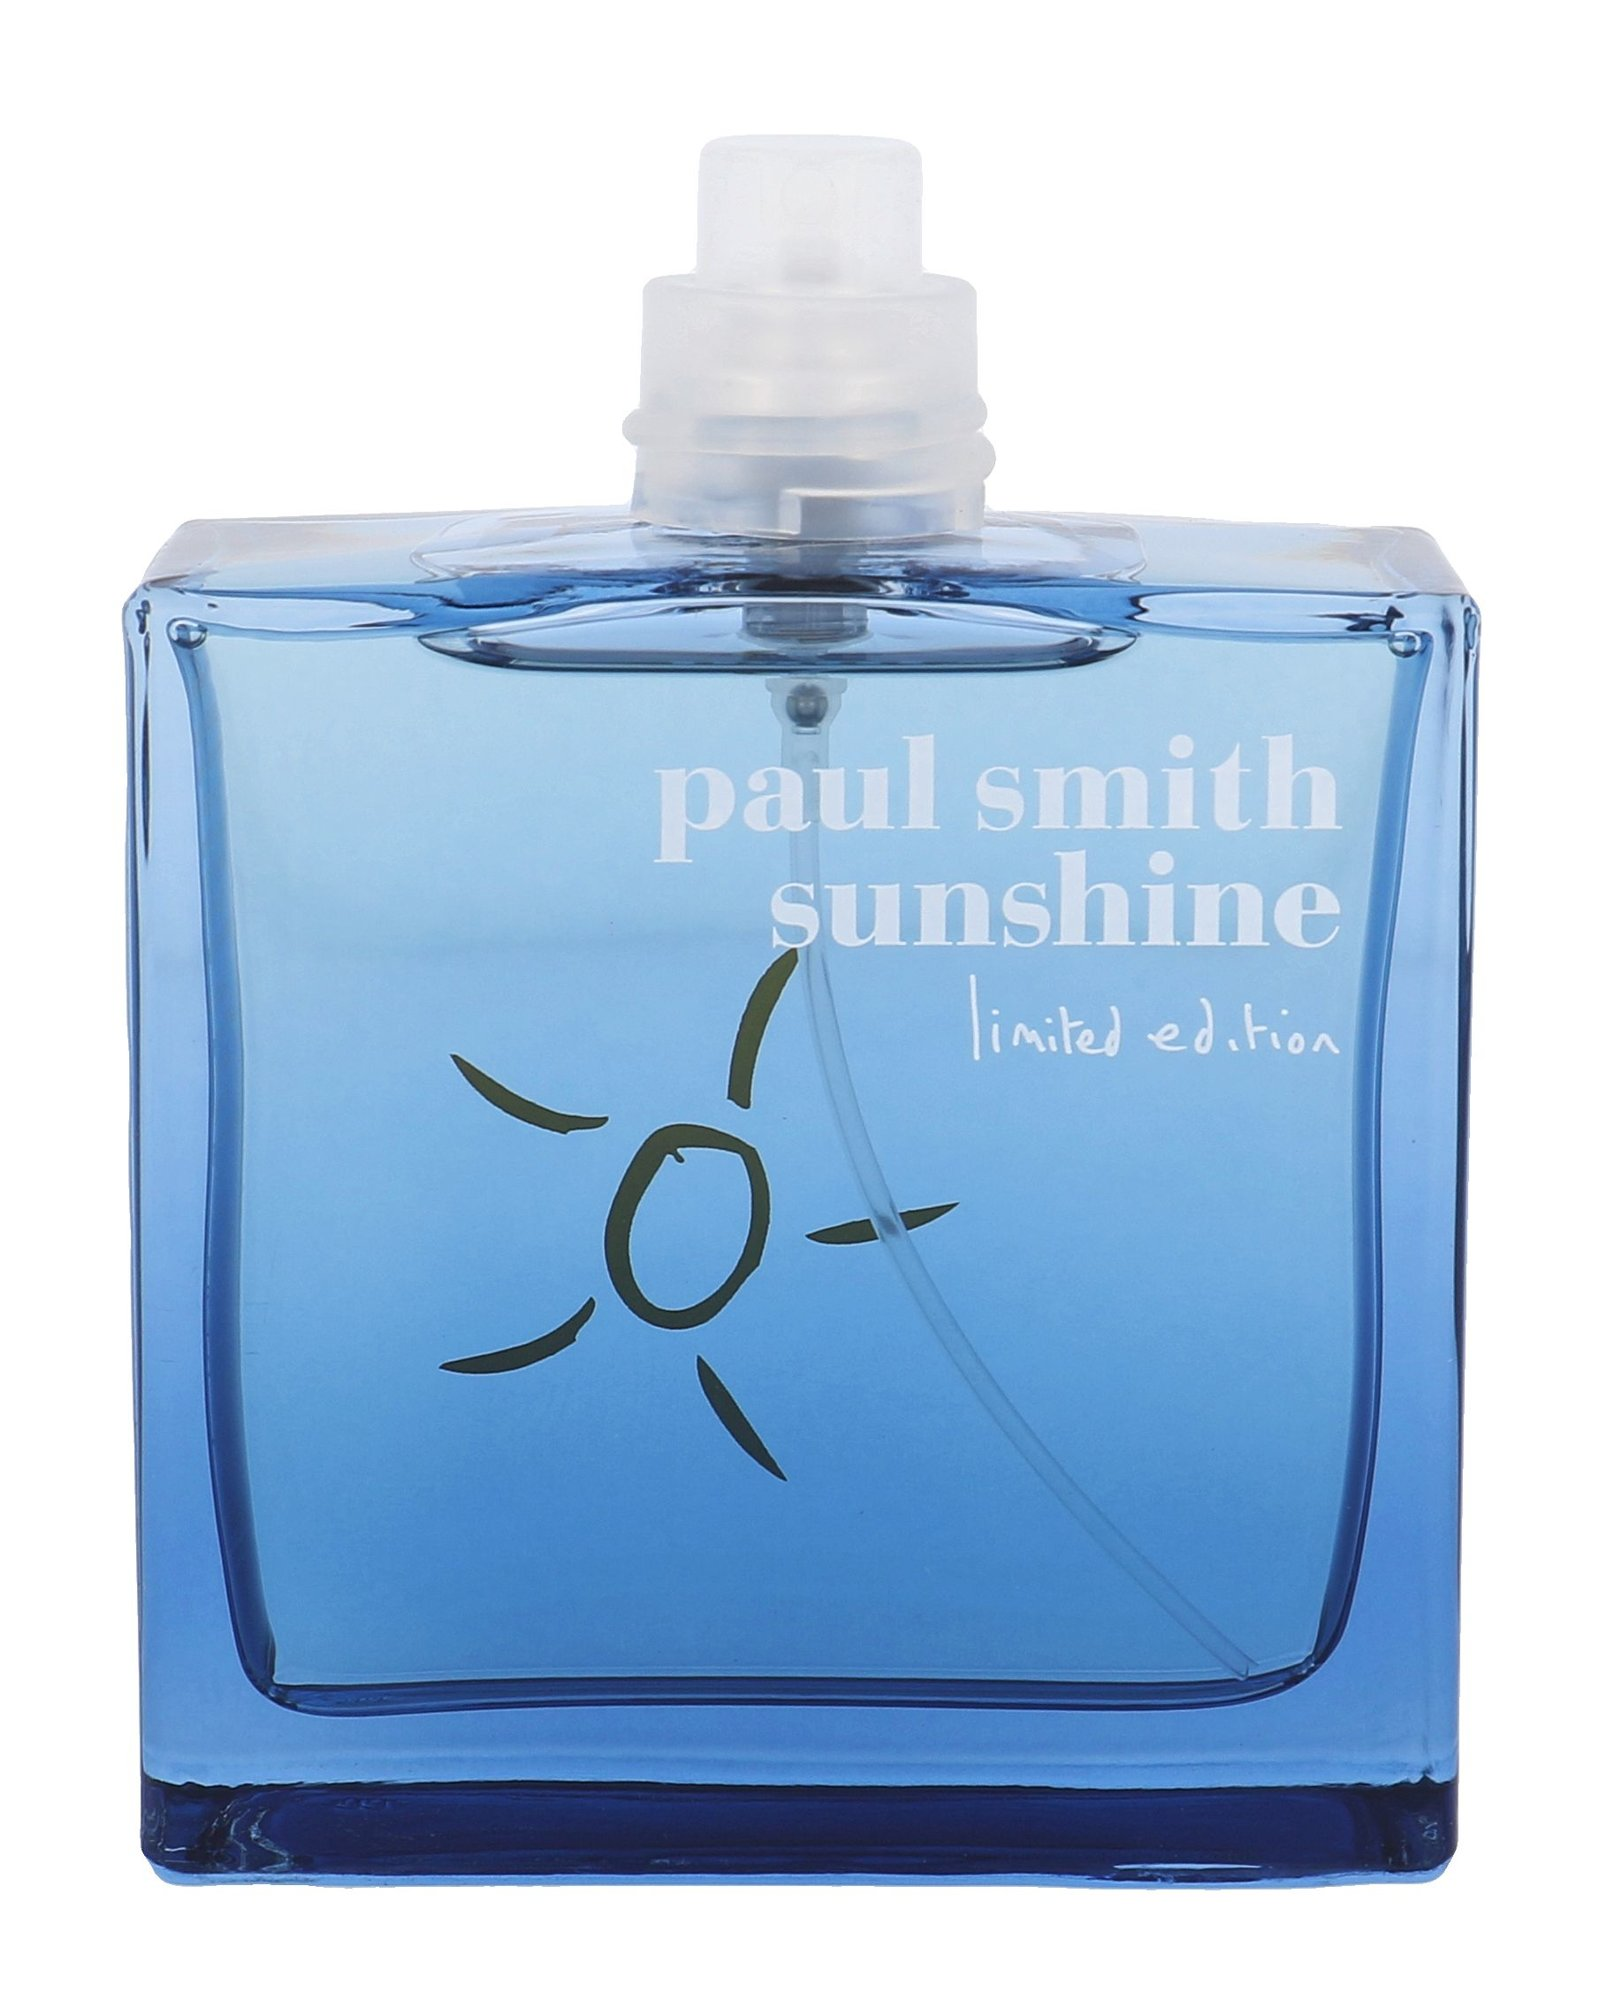 Paul Smith Sunshine For Men EDT 100ml  Limited Edition 2015